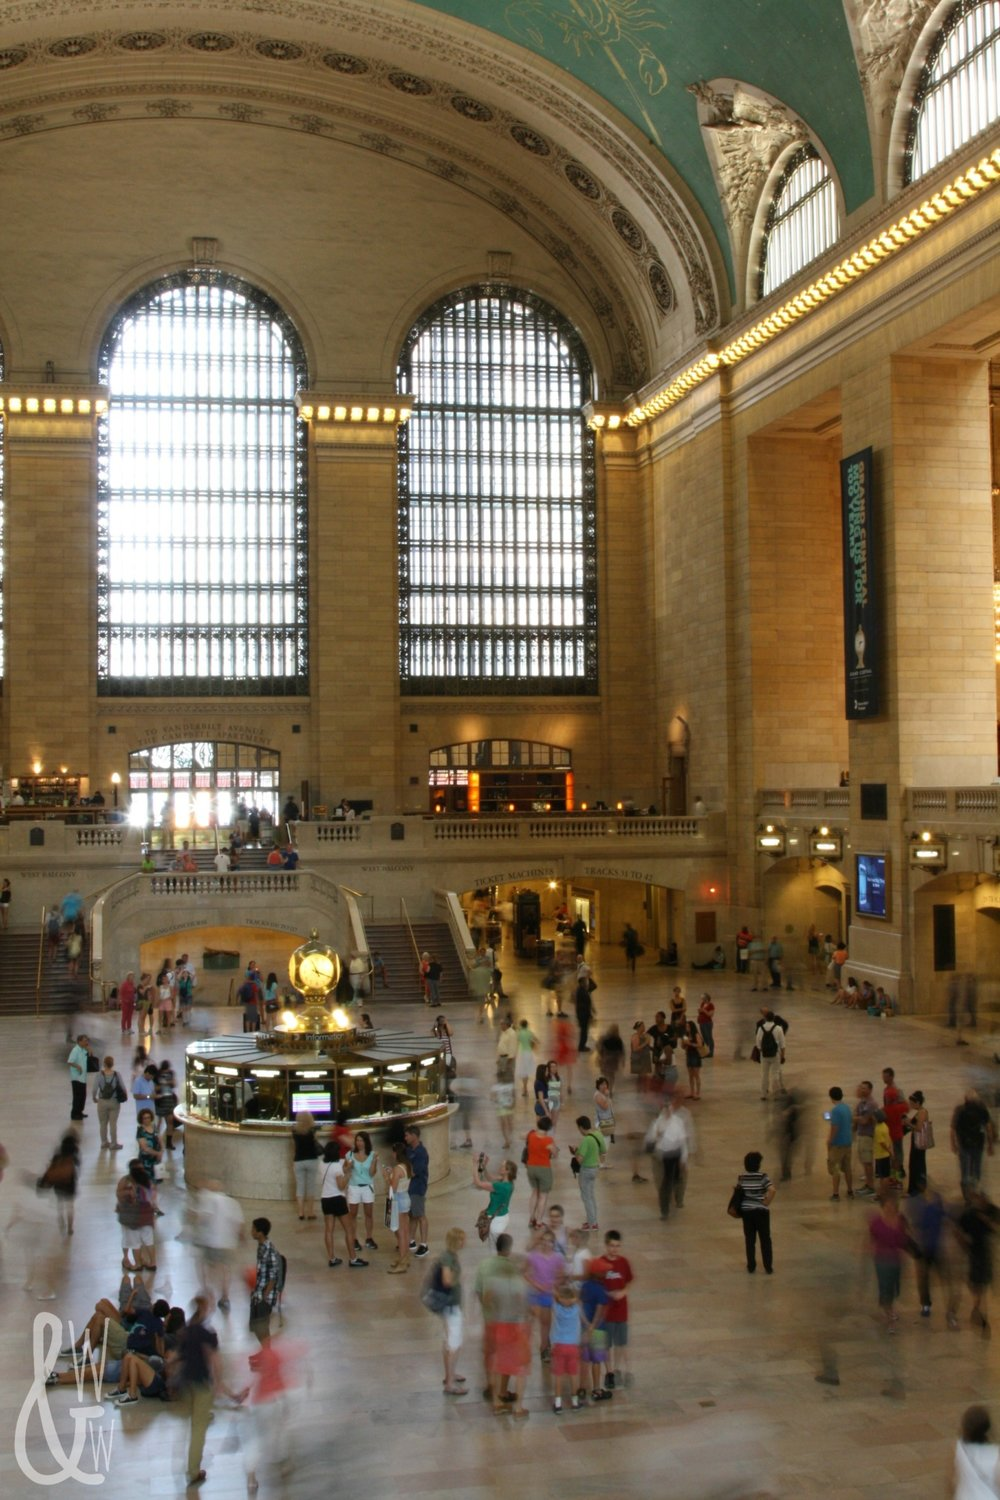 New York City has some of the best sights and museums in the world, like the Grand Central Station!